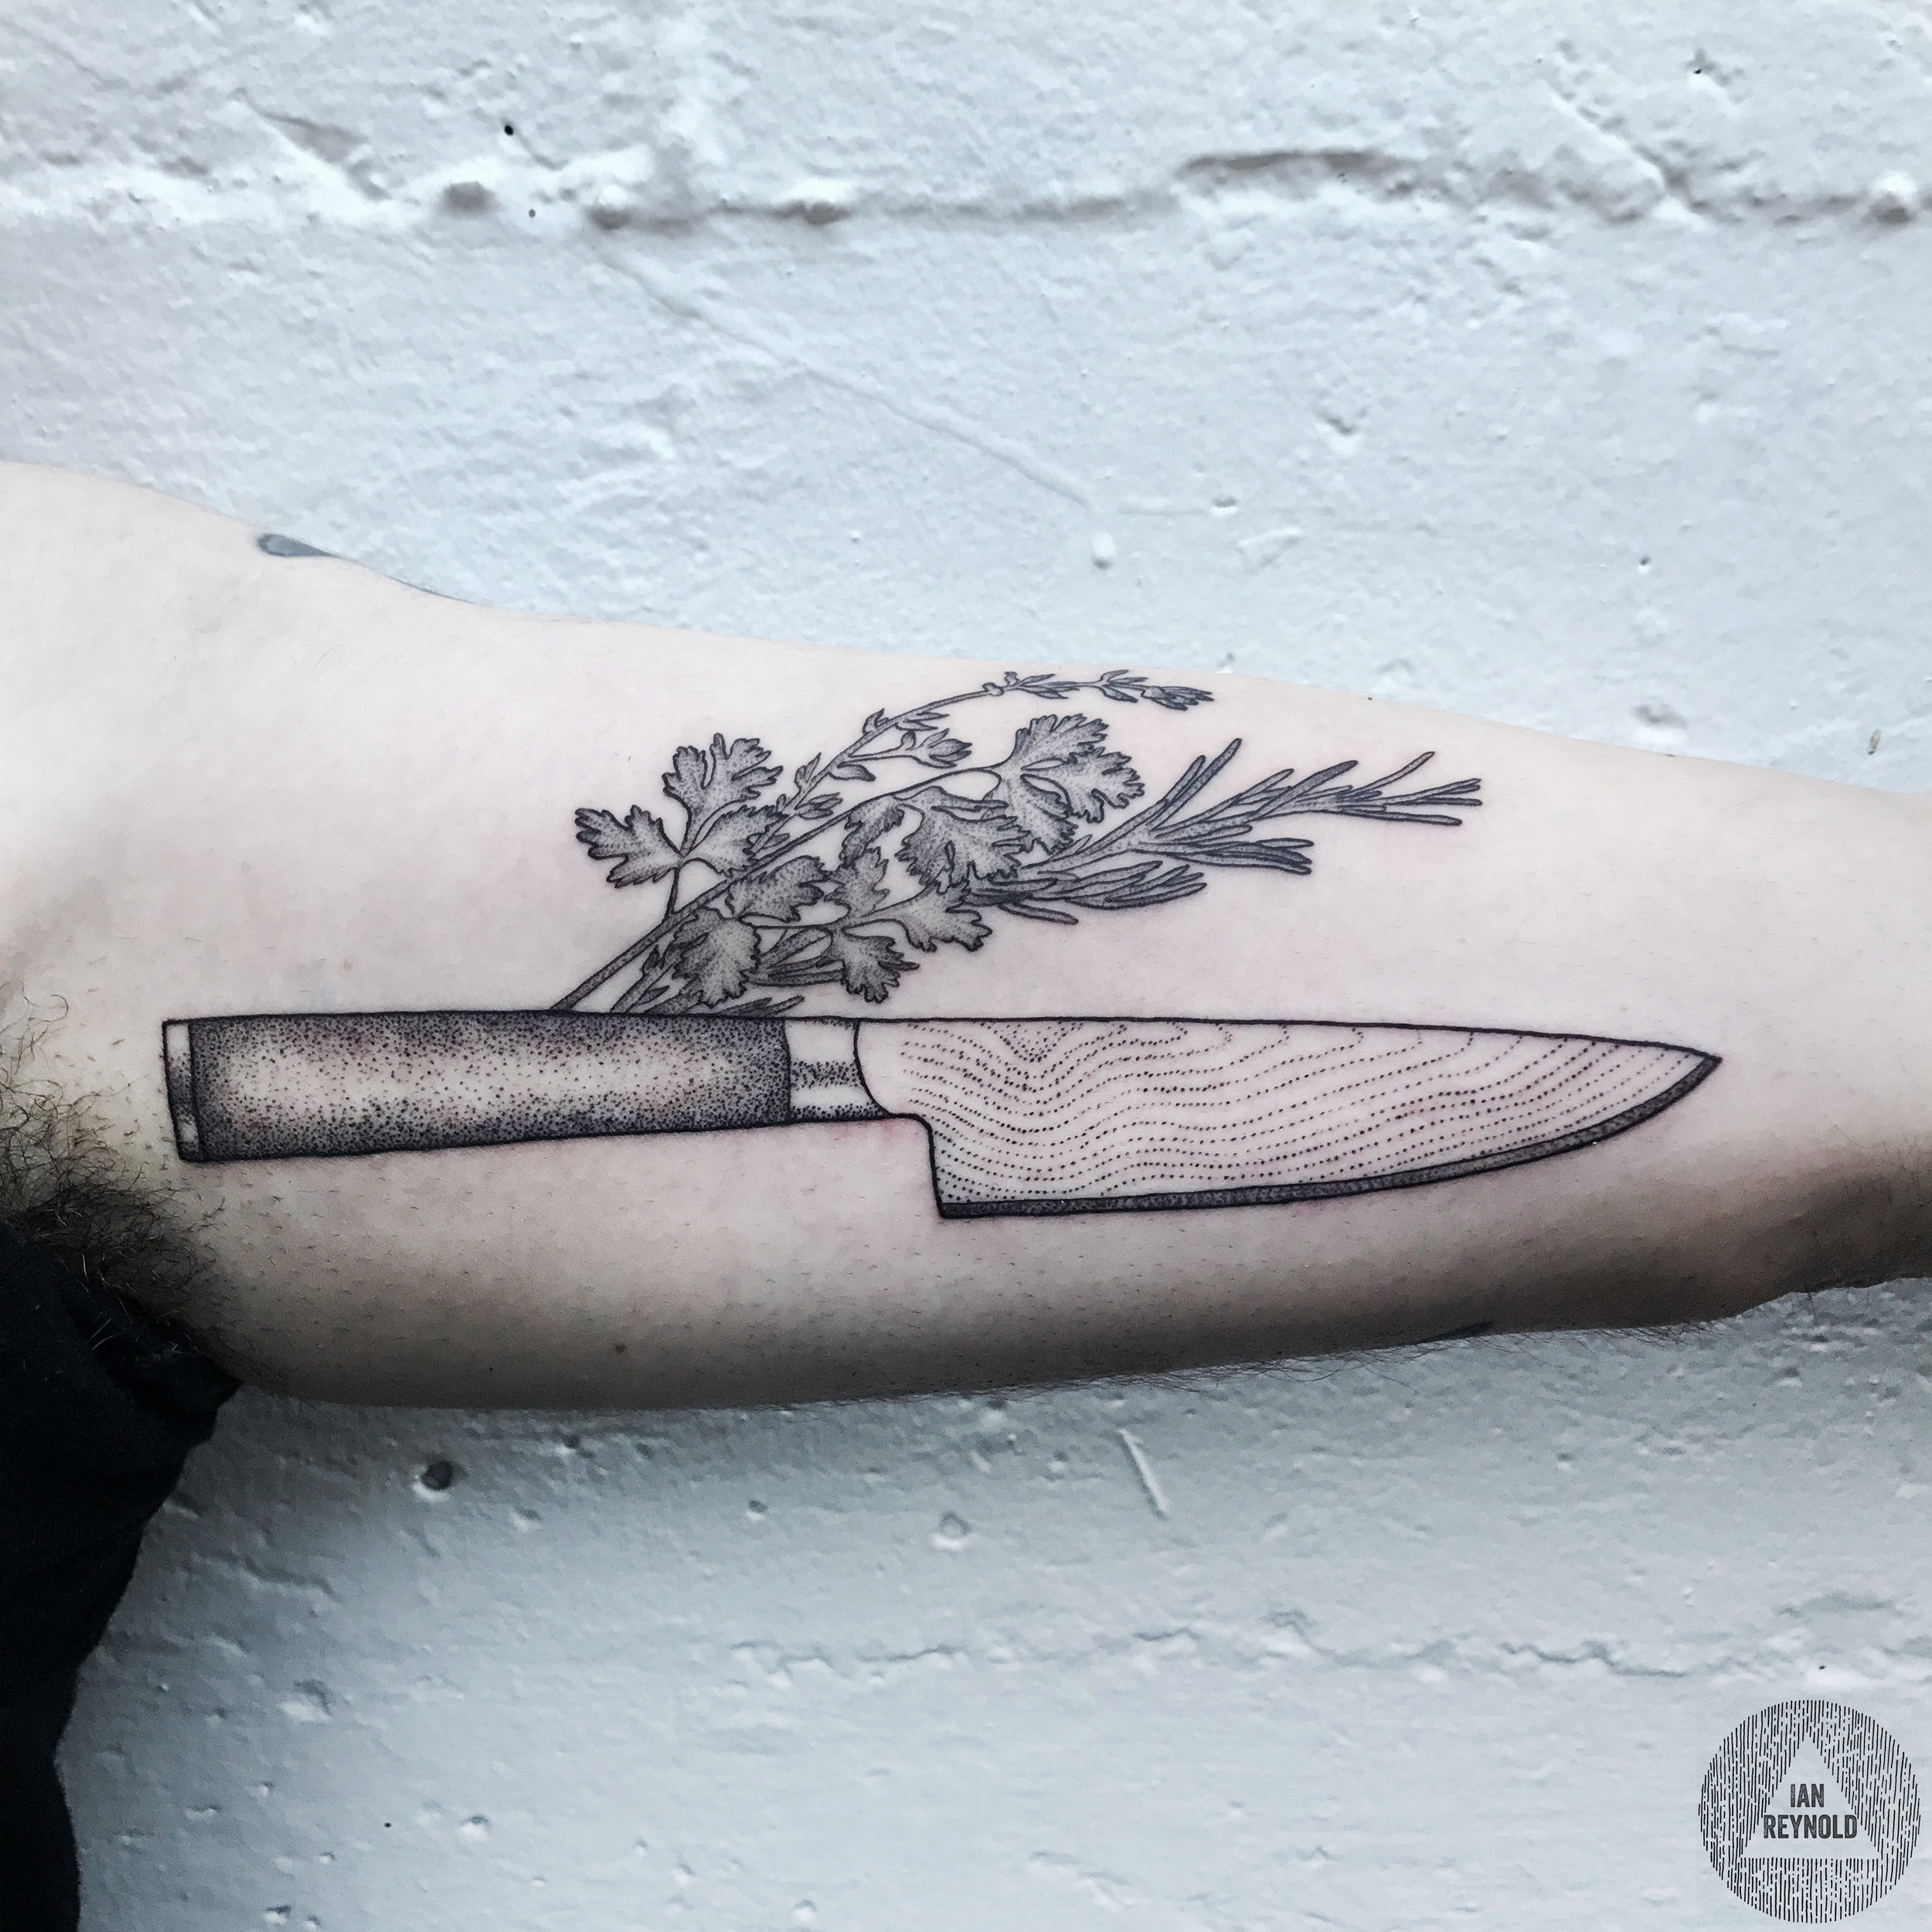 Chef's Knife - Parsley - Thyme - Rosemary